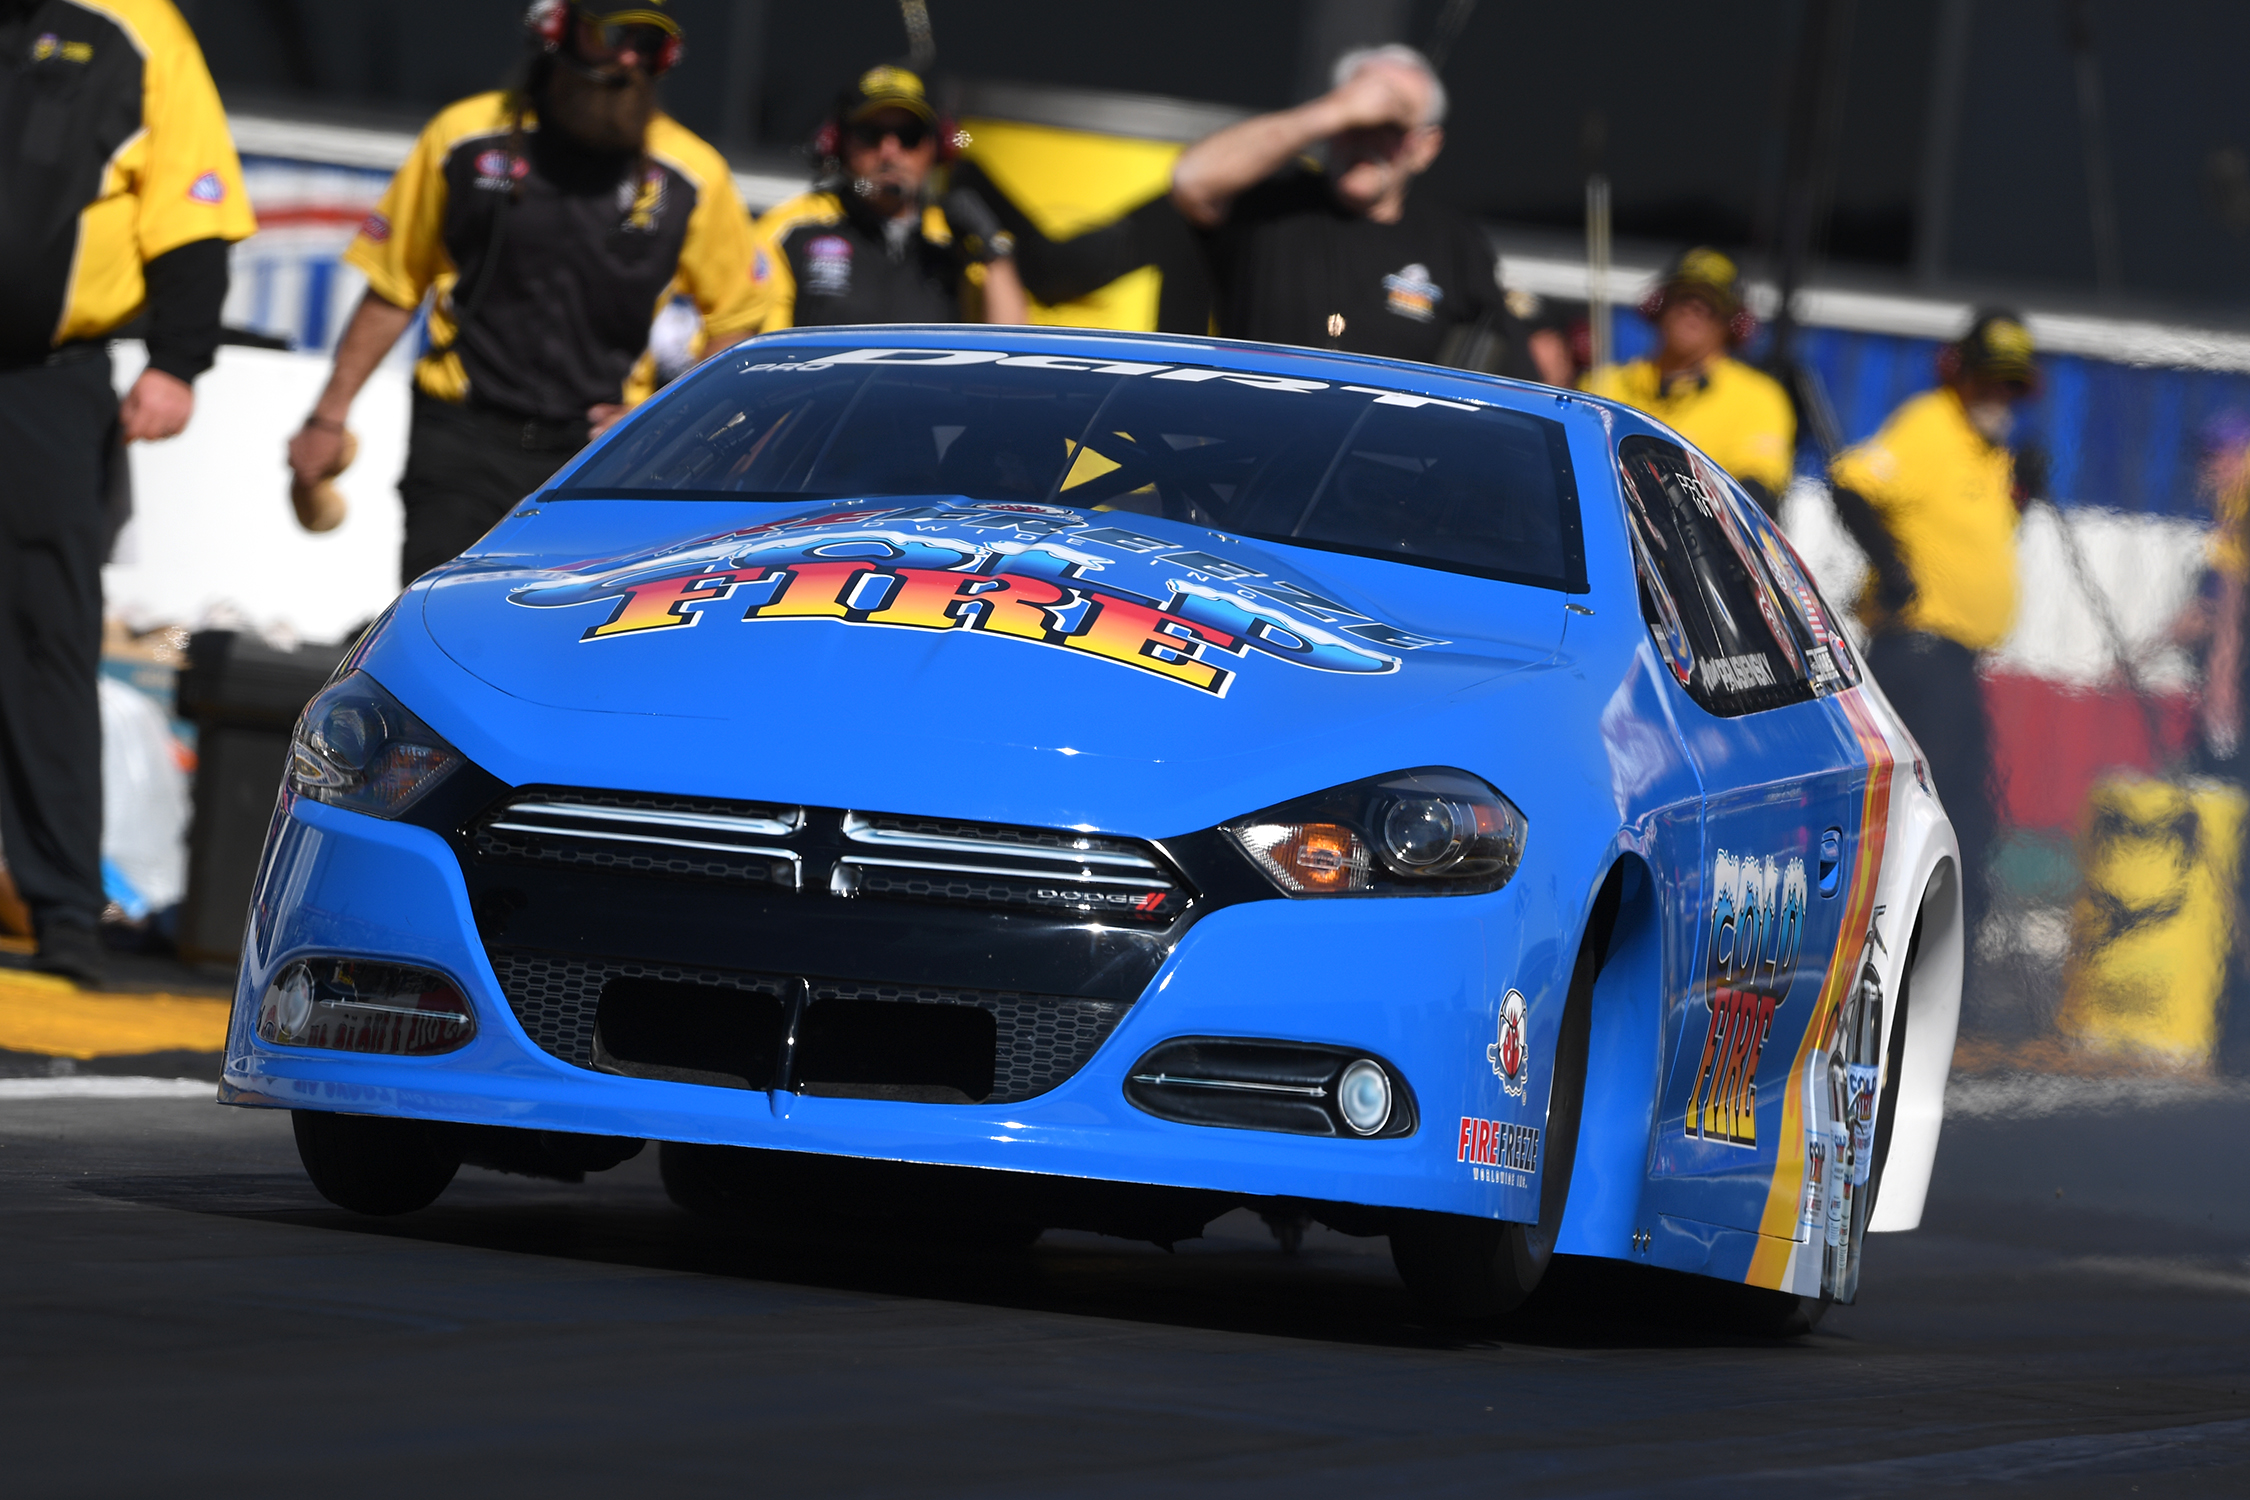 Cold Fire Pro Stock driver Alan Prusiensky driving in an undated NHRA national event